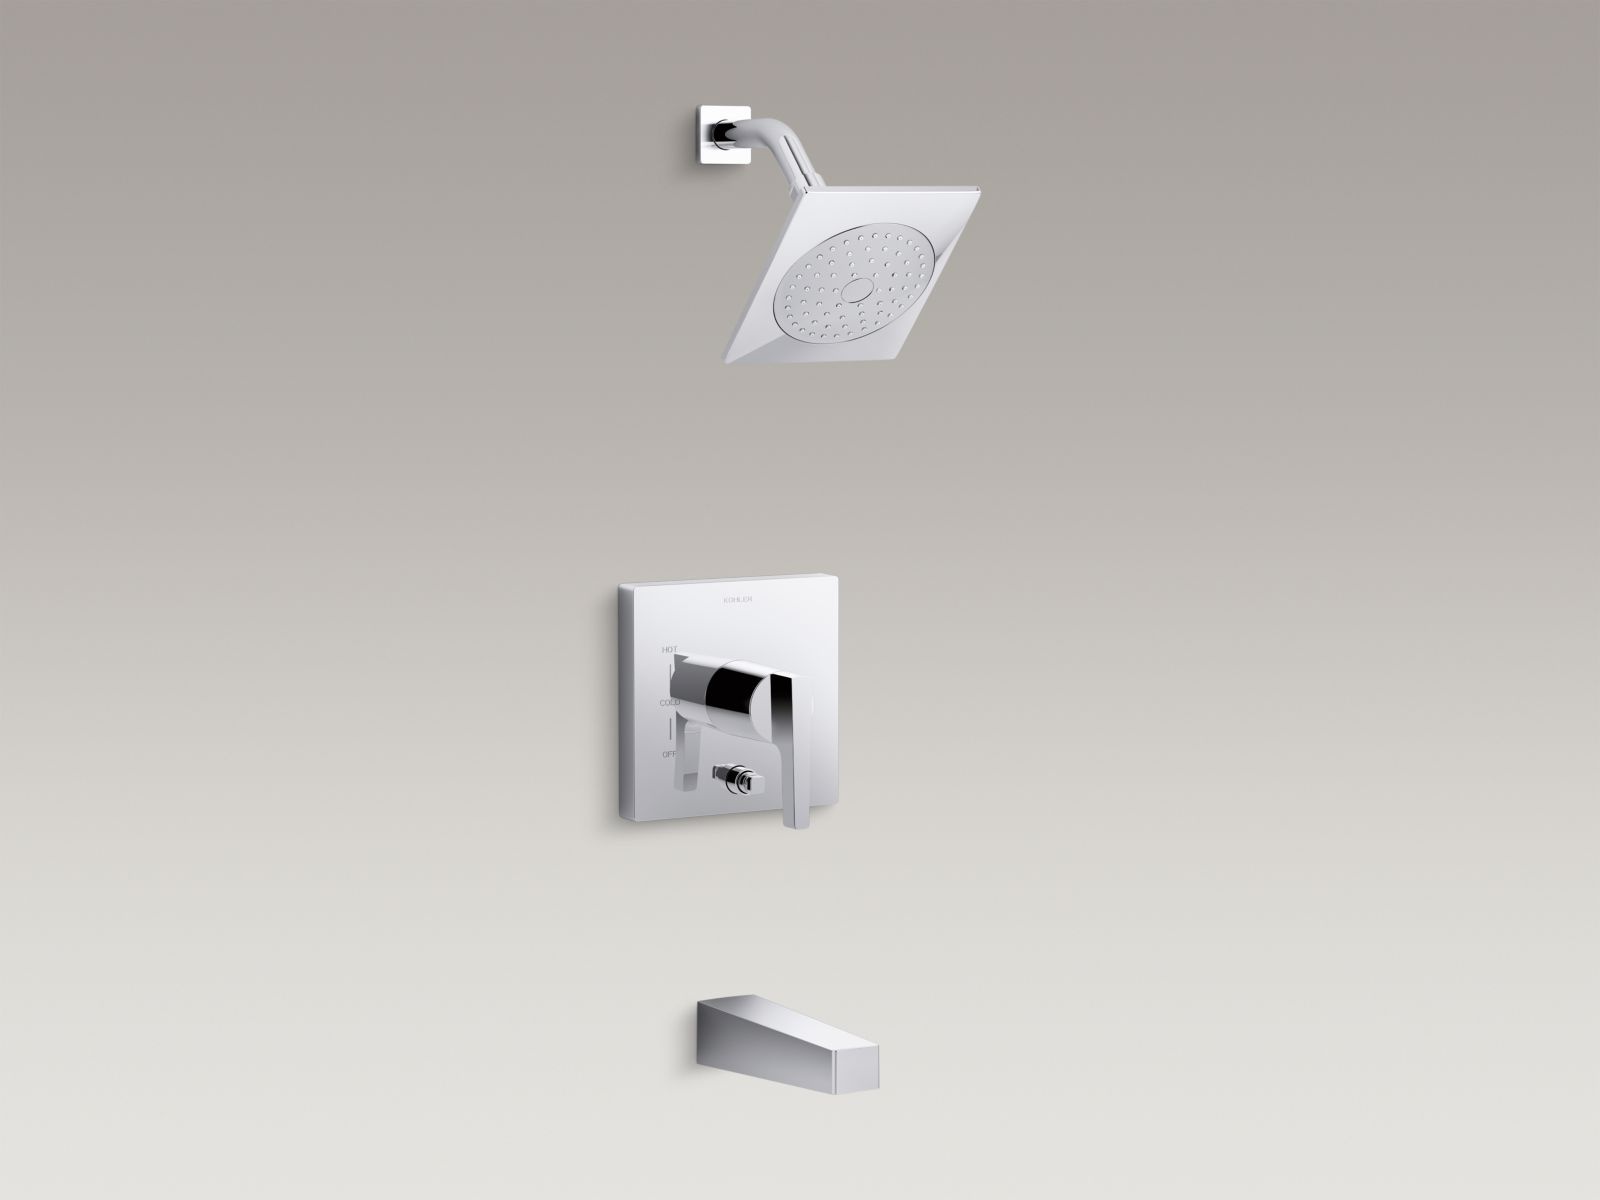 Kohler Honesty™ K-T99763-4-CP bath and shower trim set with 2.0 gpm showerhead and lever handle for Rite-Temp® pressure-balancing valve Polished Chrome